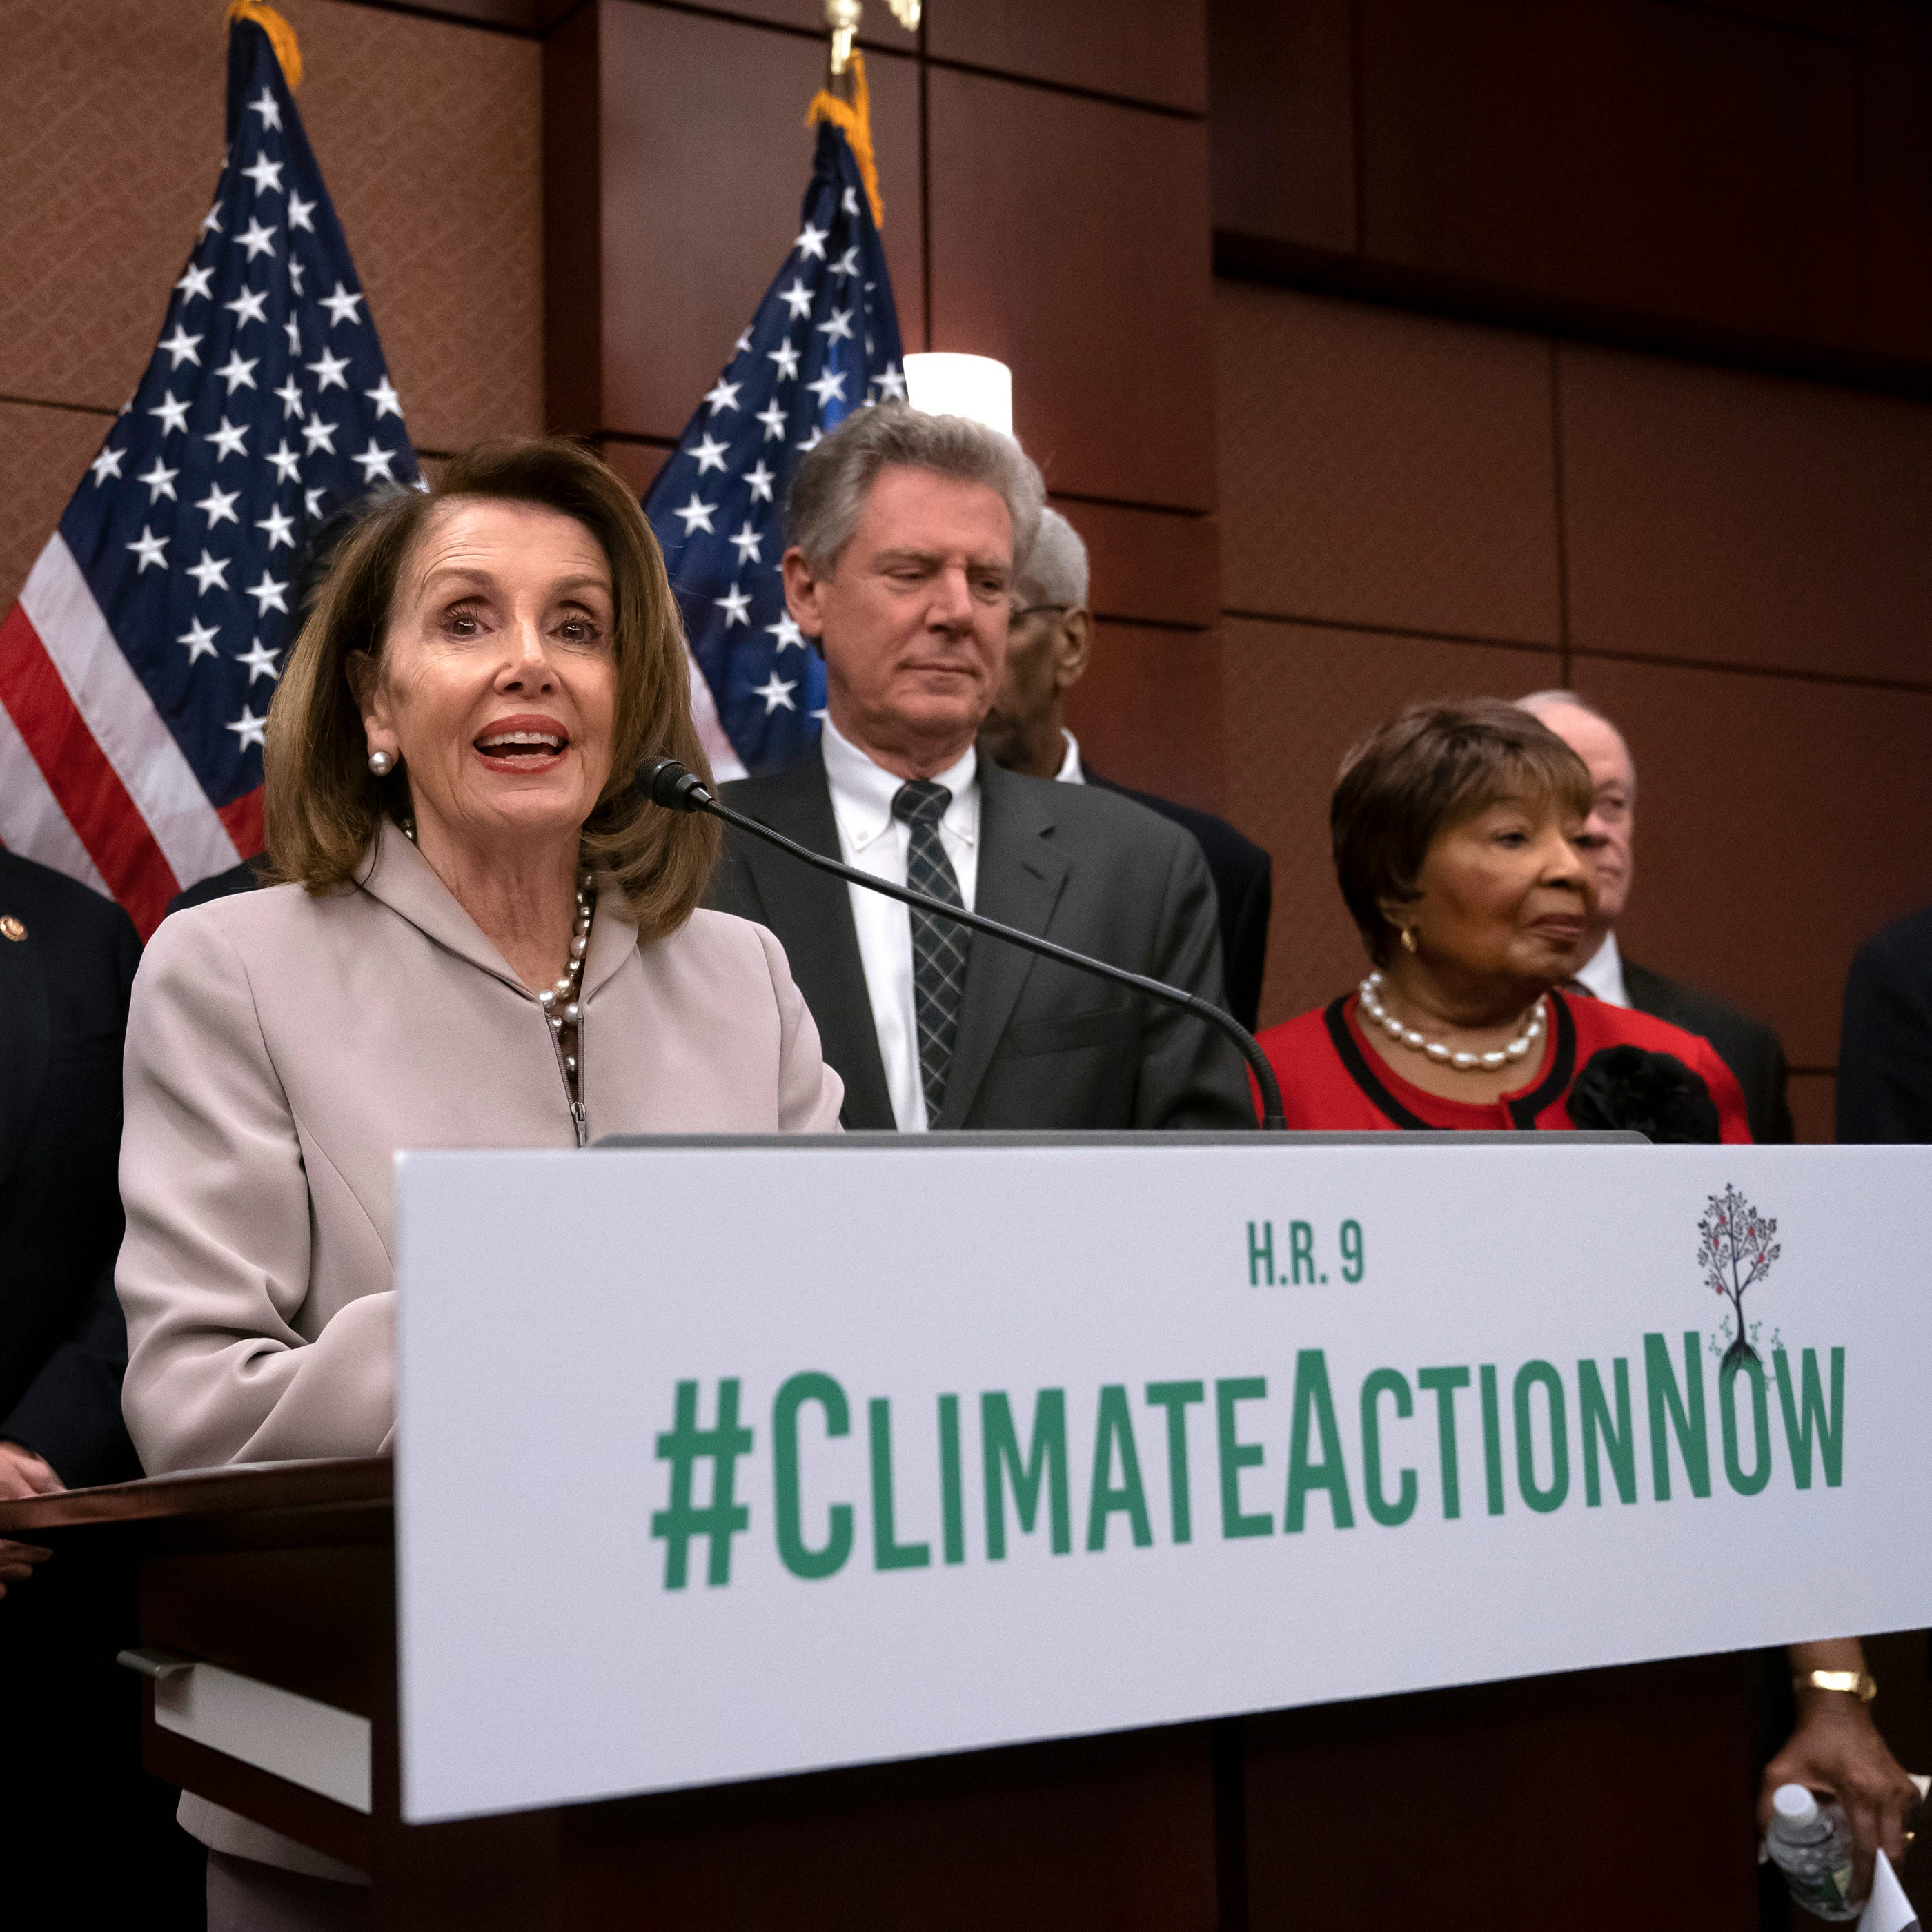 Rebuking Trump, House votes to keep U.S. in Paris climate pact